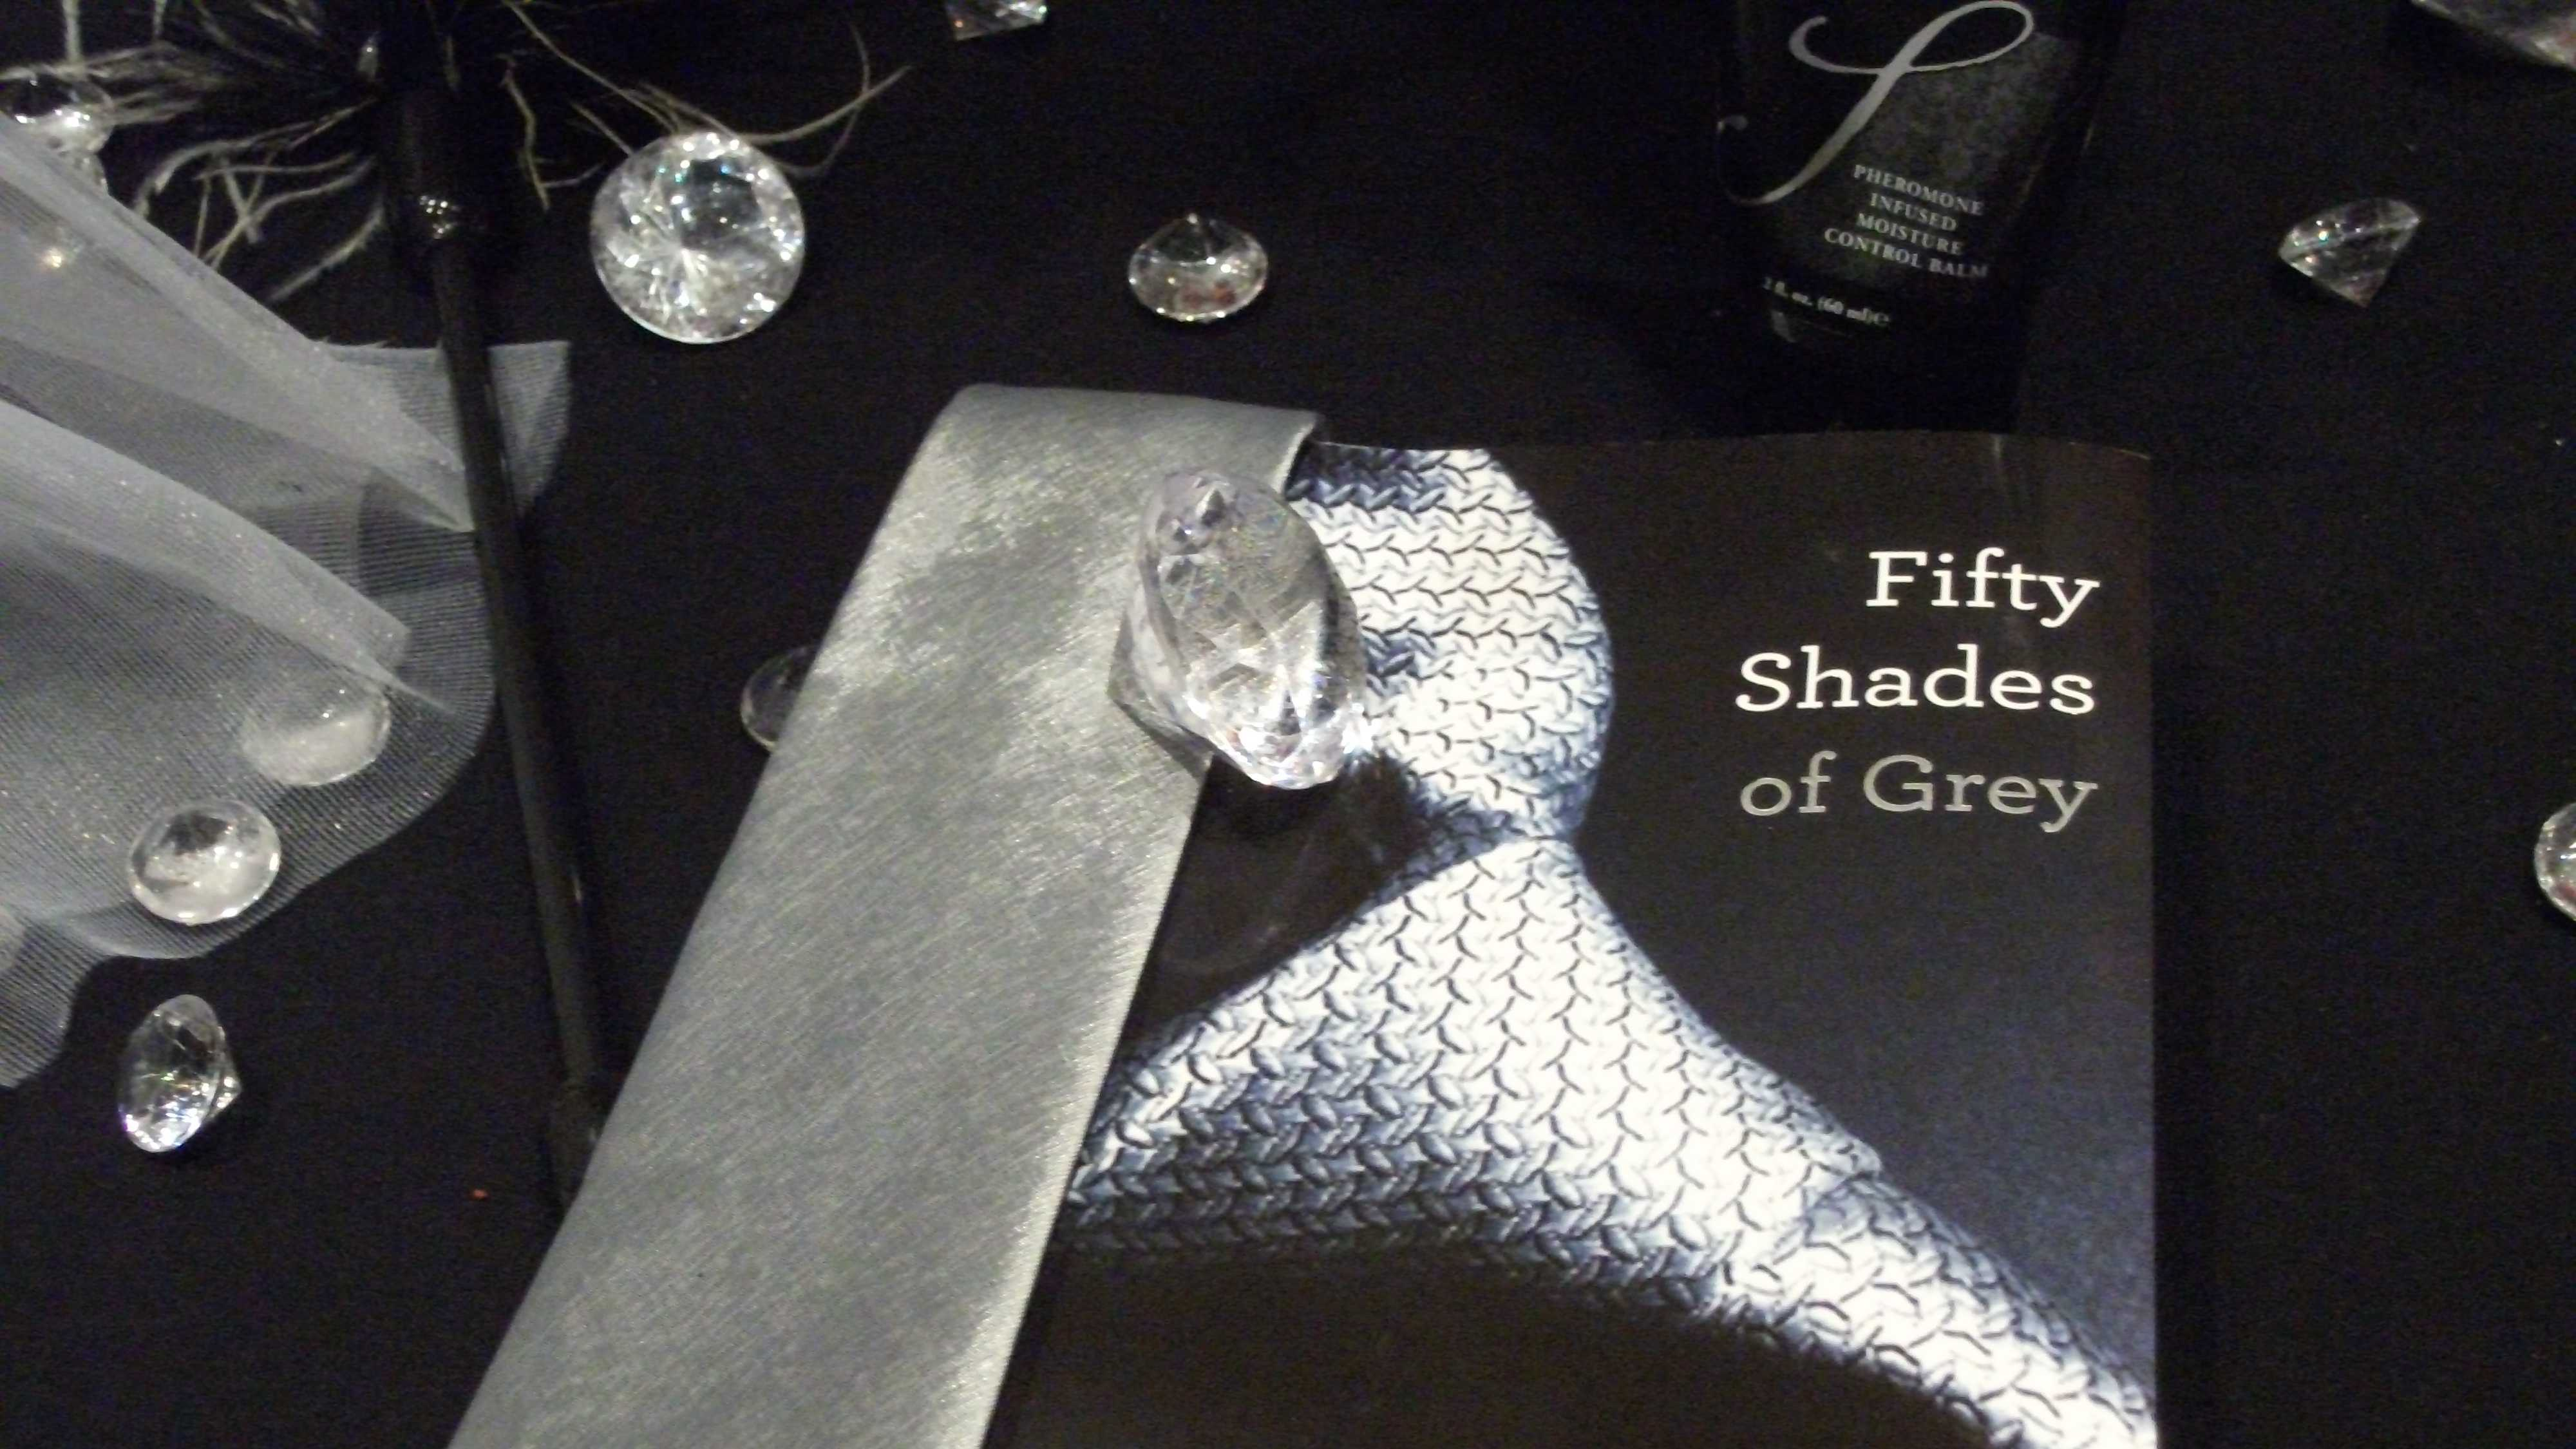 Slumber Parties had their table decorated with the novel, diamonds, ties and feathers which would be great for the 50 Shades of Grey wedding theme.